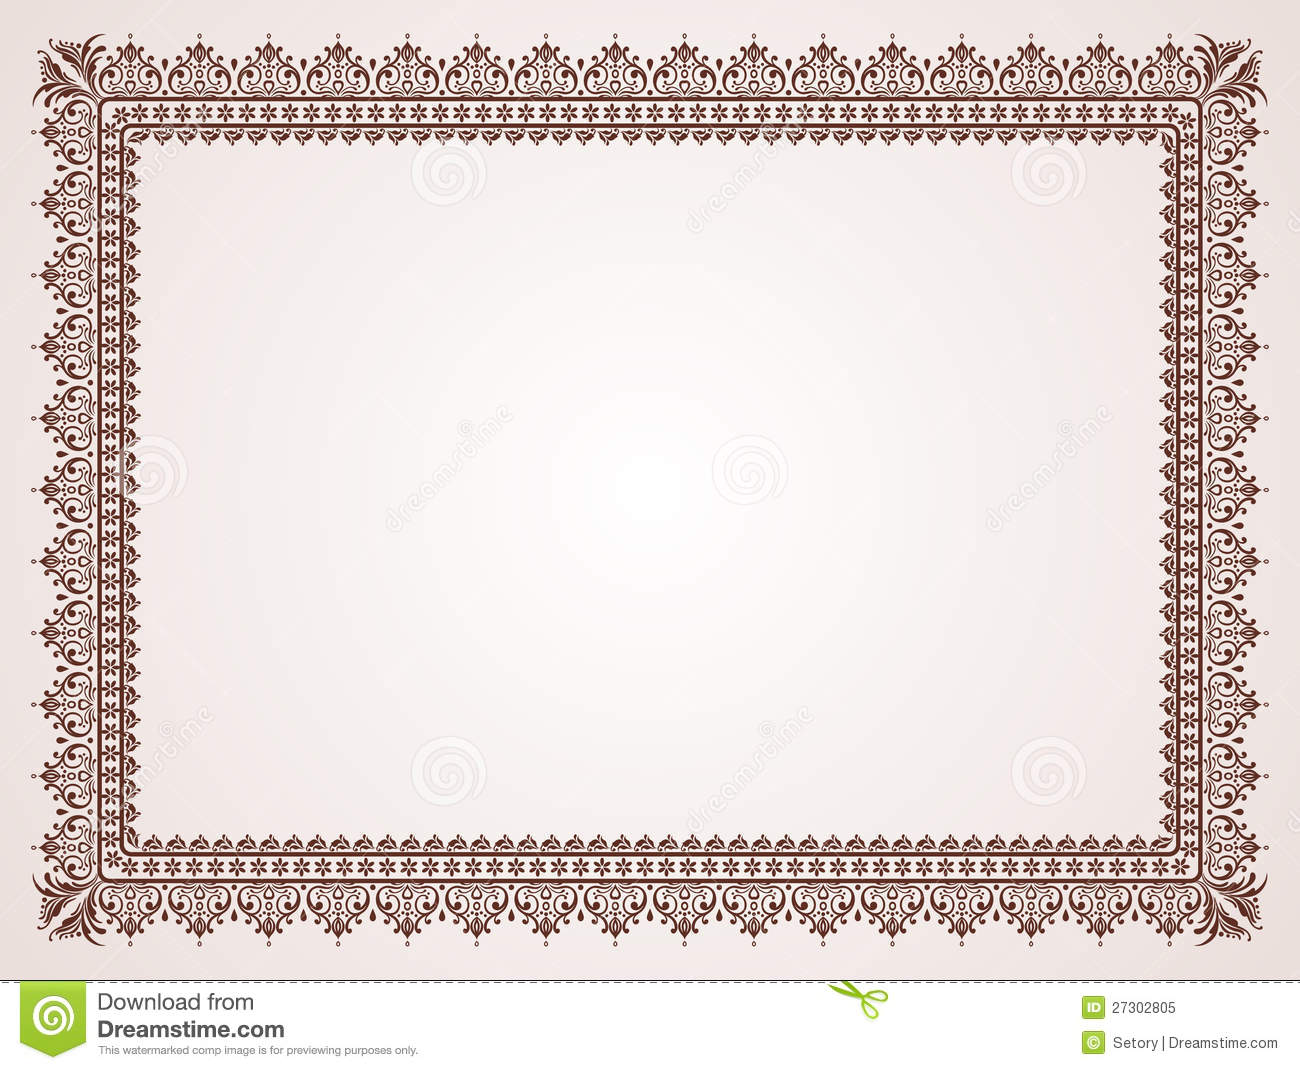 Blank Certificate Royalty Free Stock Photo - Image: 27302805